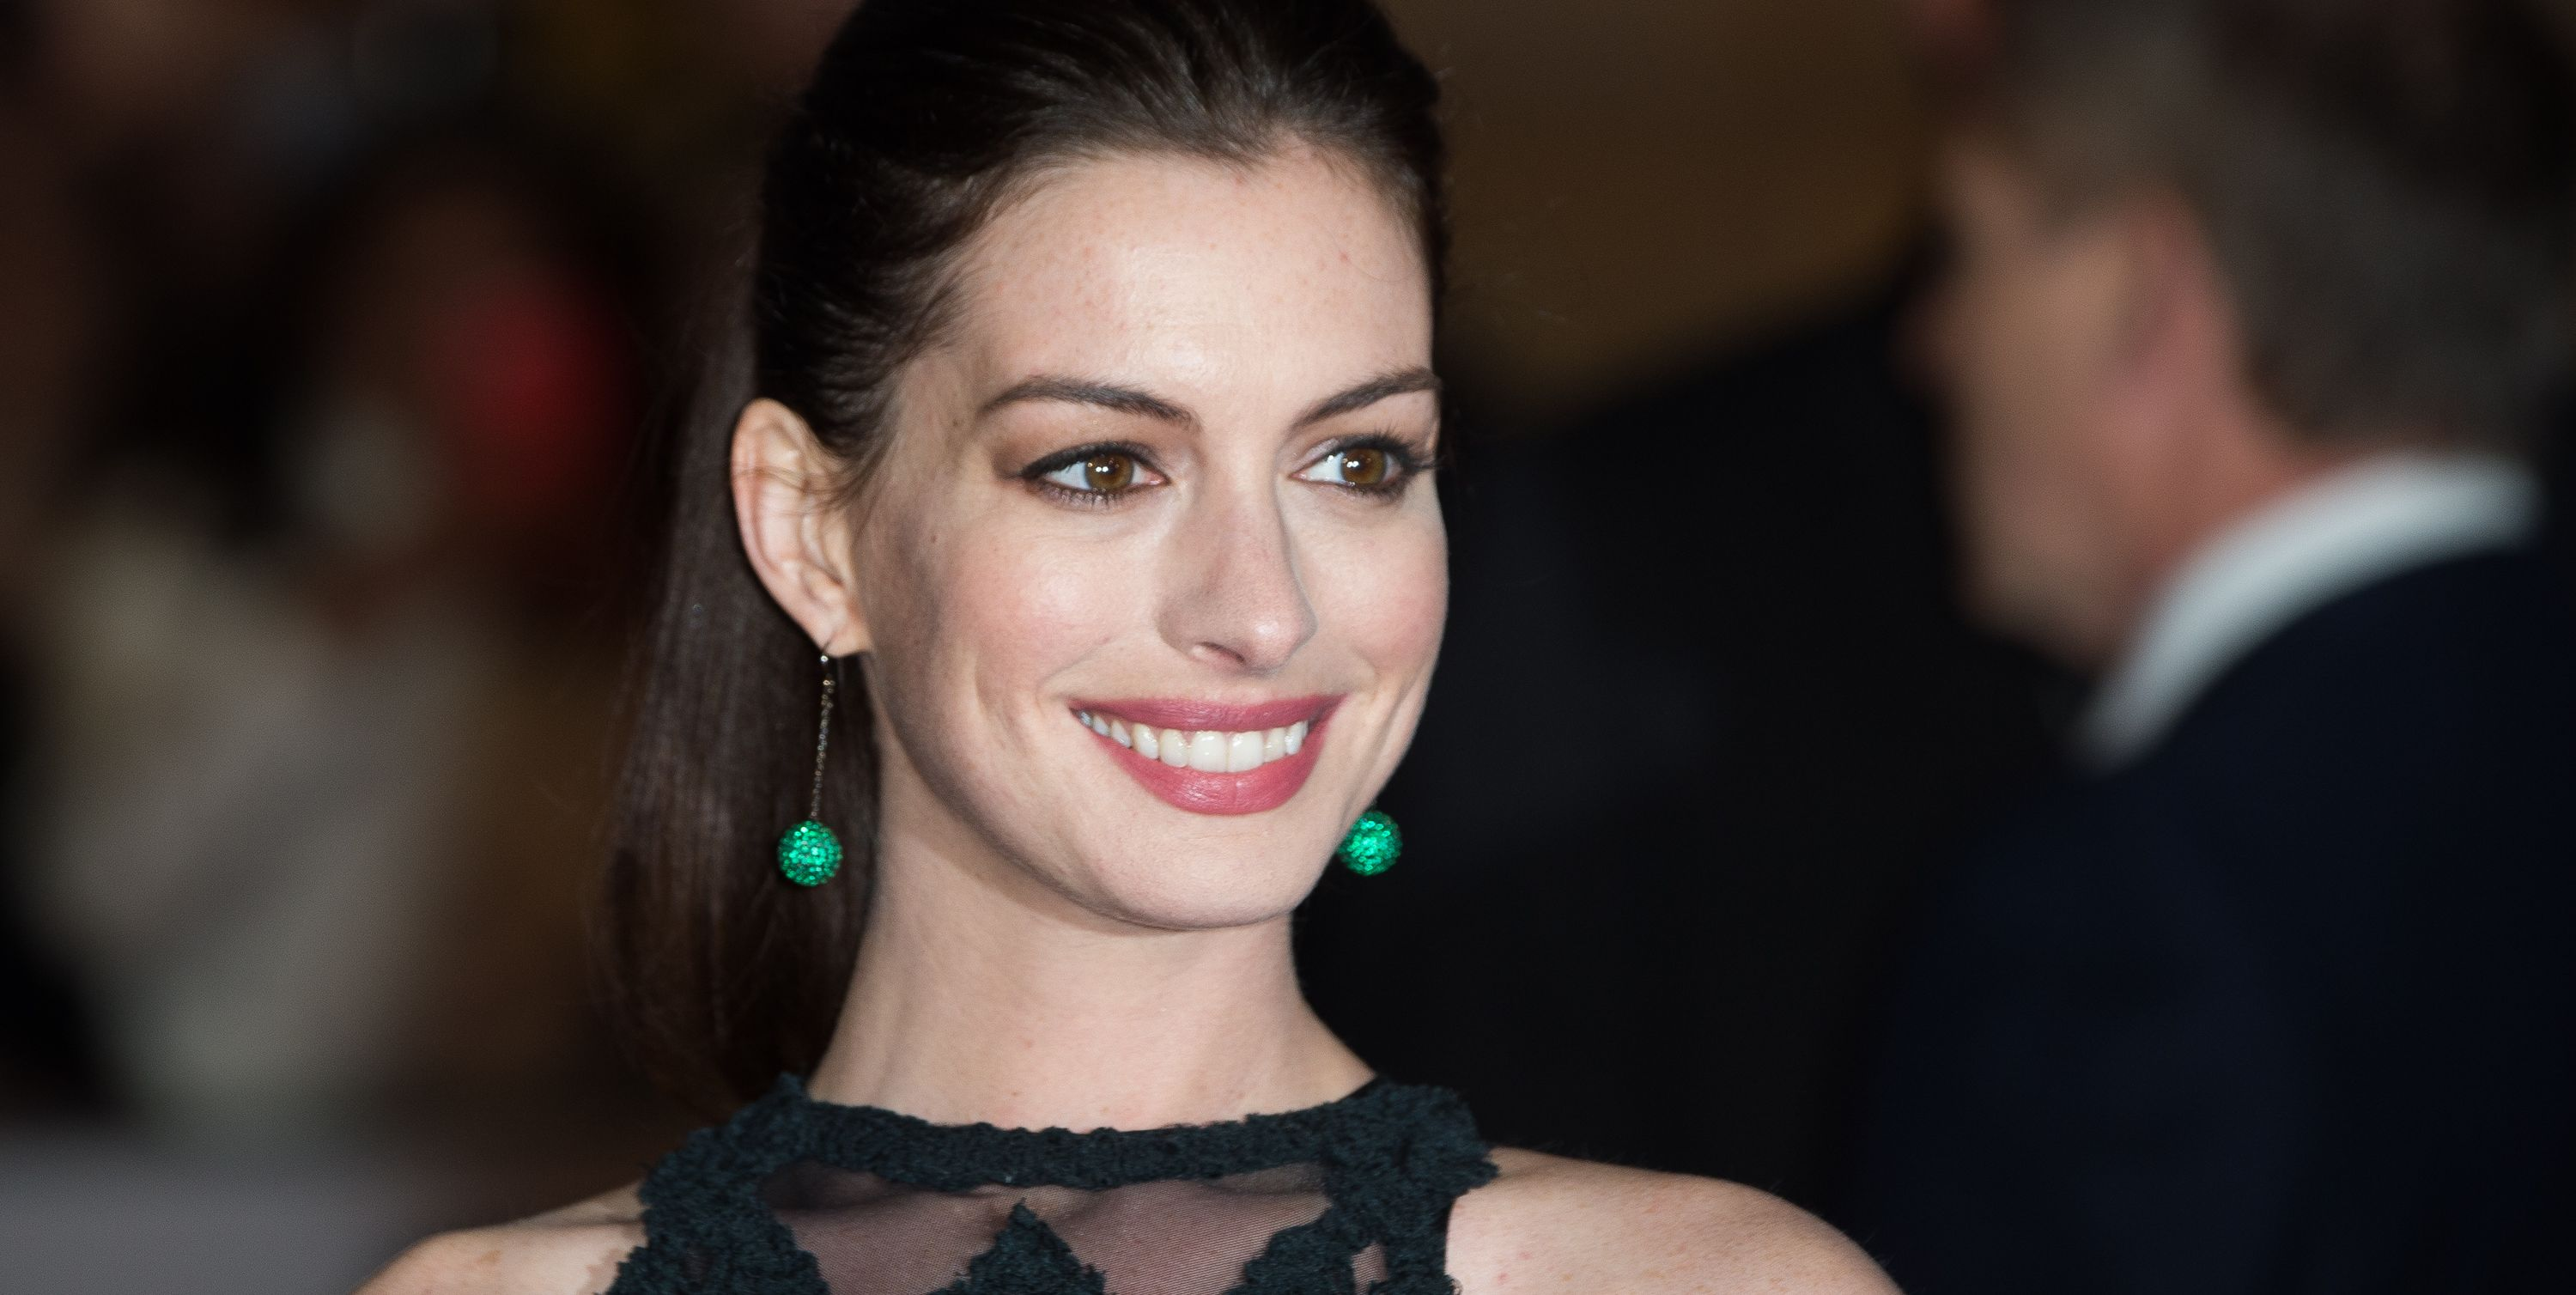 Anne Hathaway Says She's Quitting Drinking for the Next 16 Years